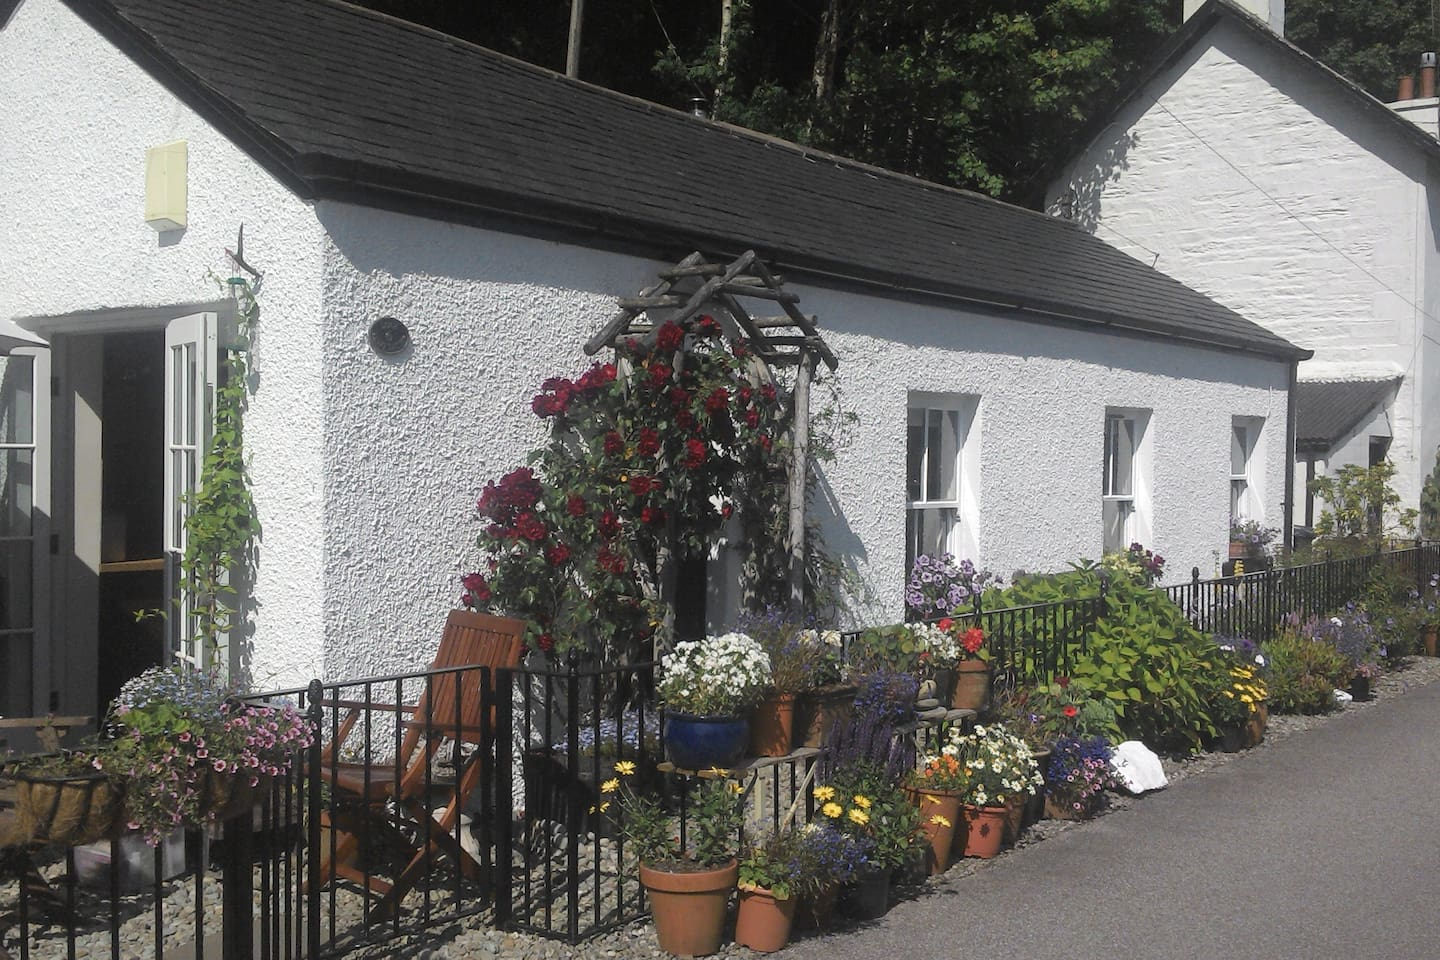 The Cottage and garden in summer